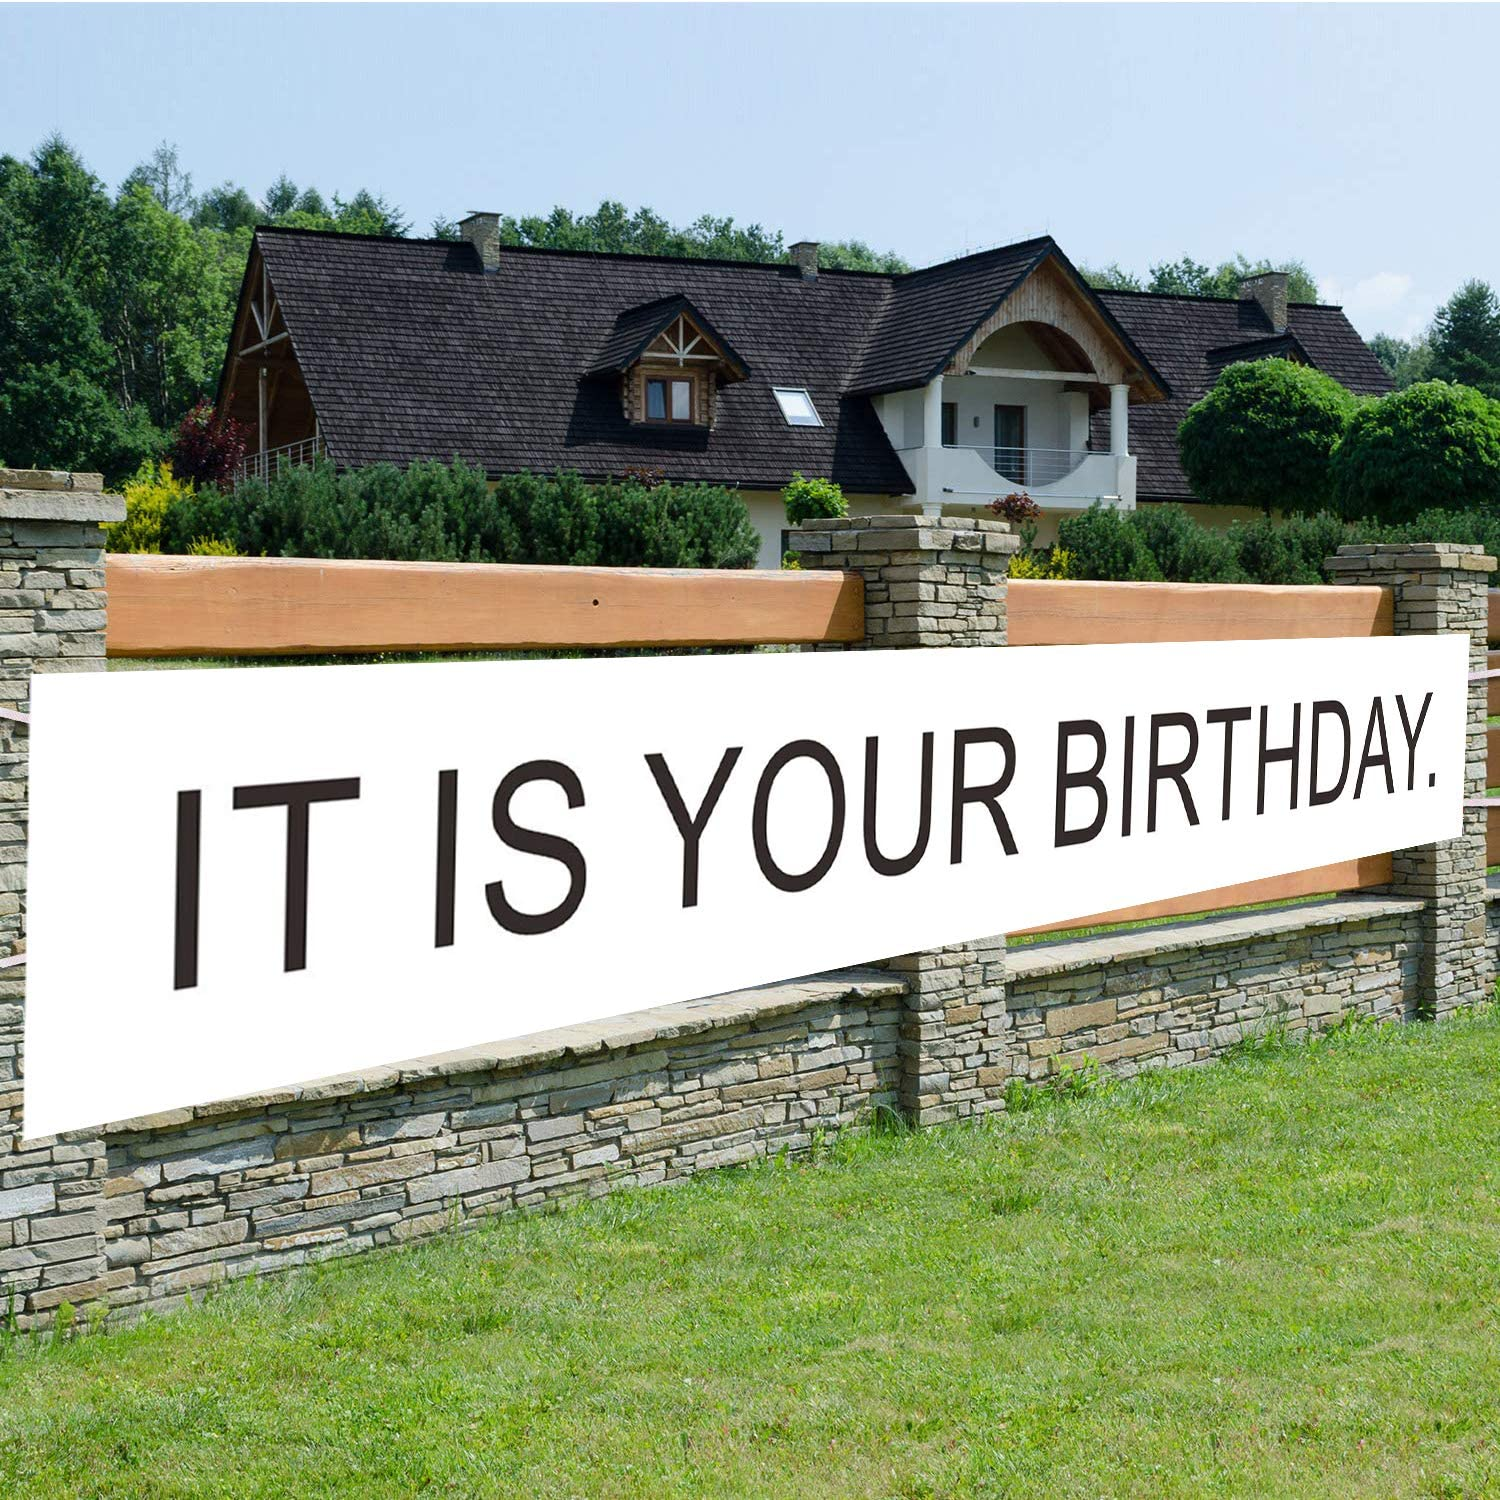 It's Your Birthday Birthday Banner,Large Sign,Huge House Home Outdoor Party Decorations